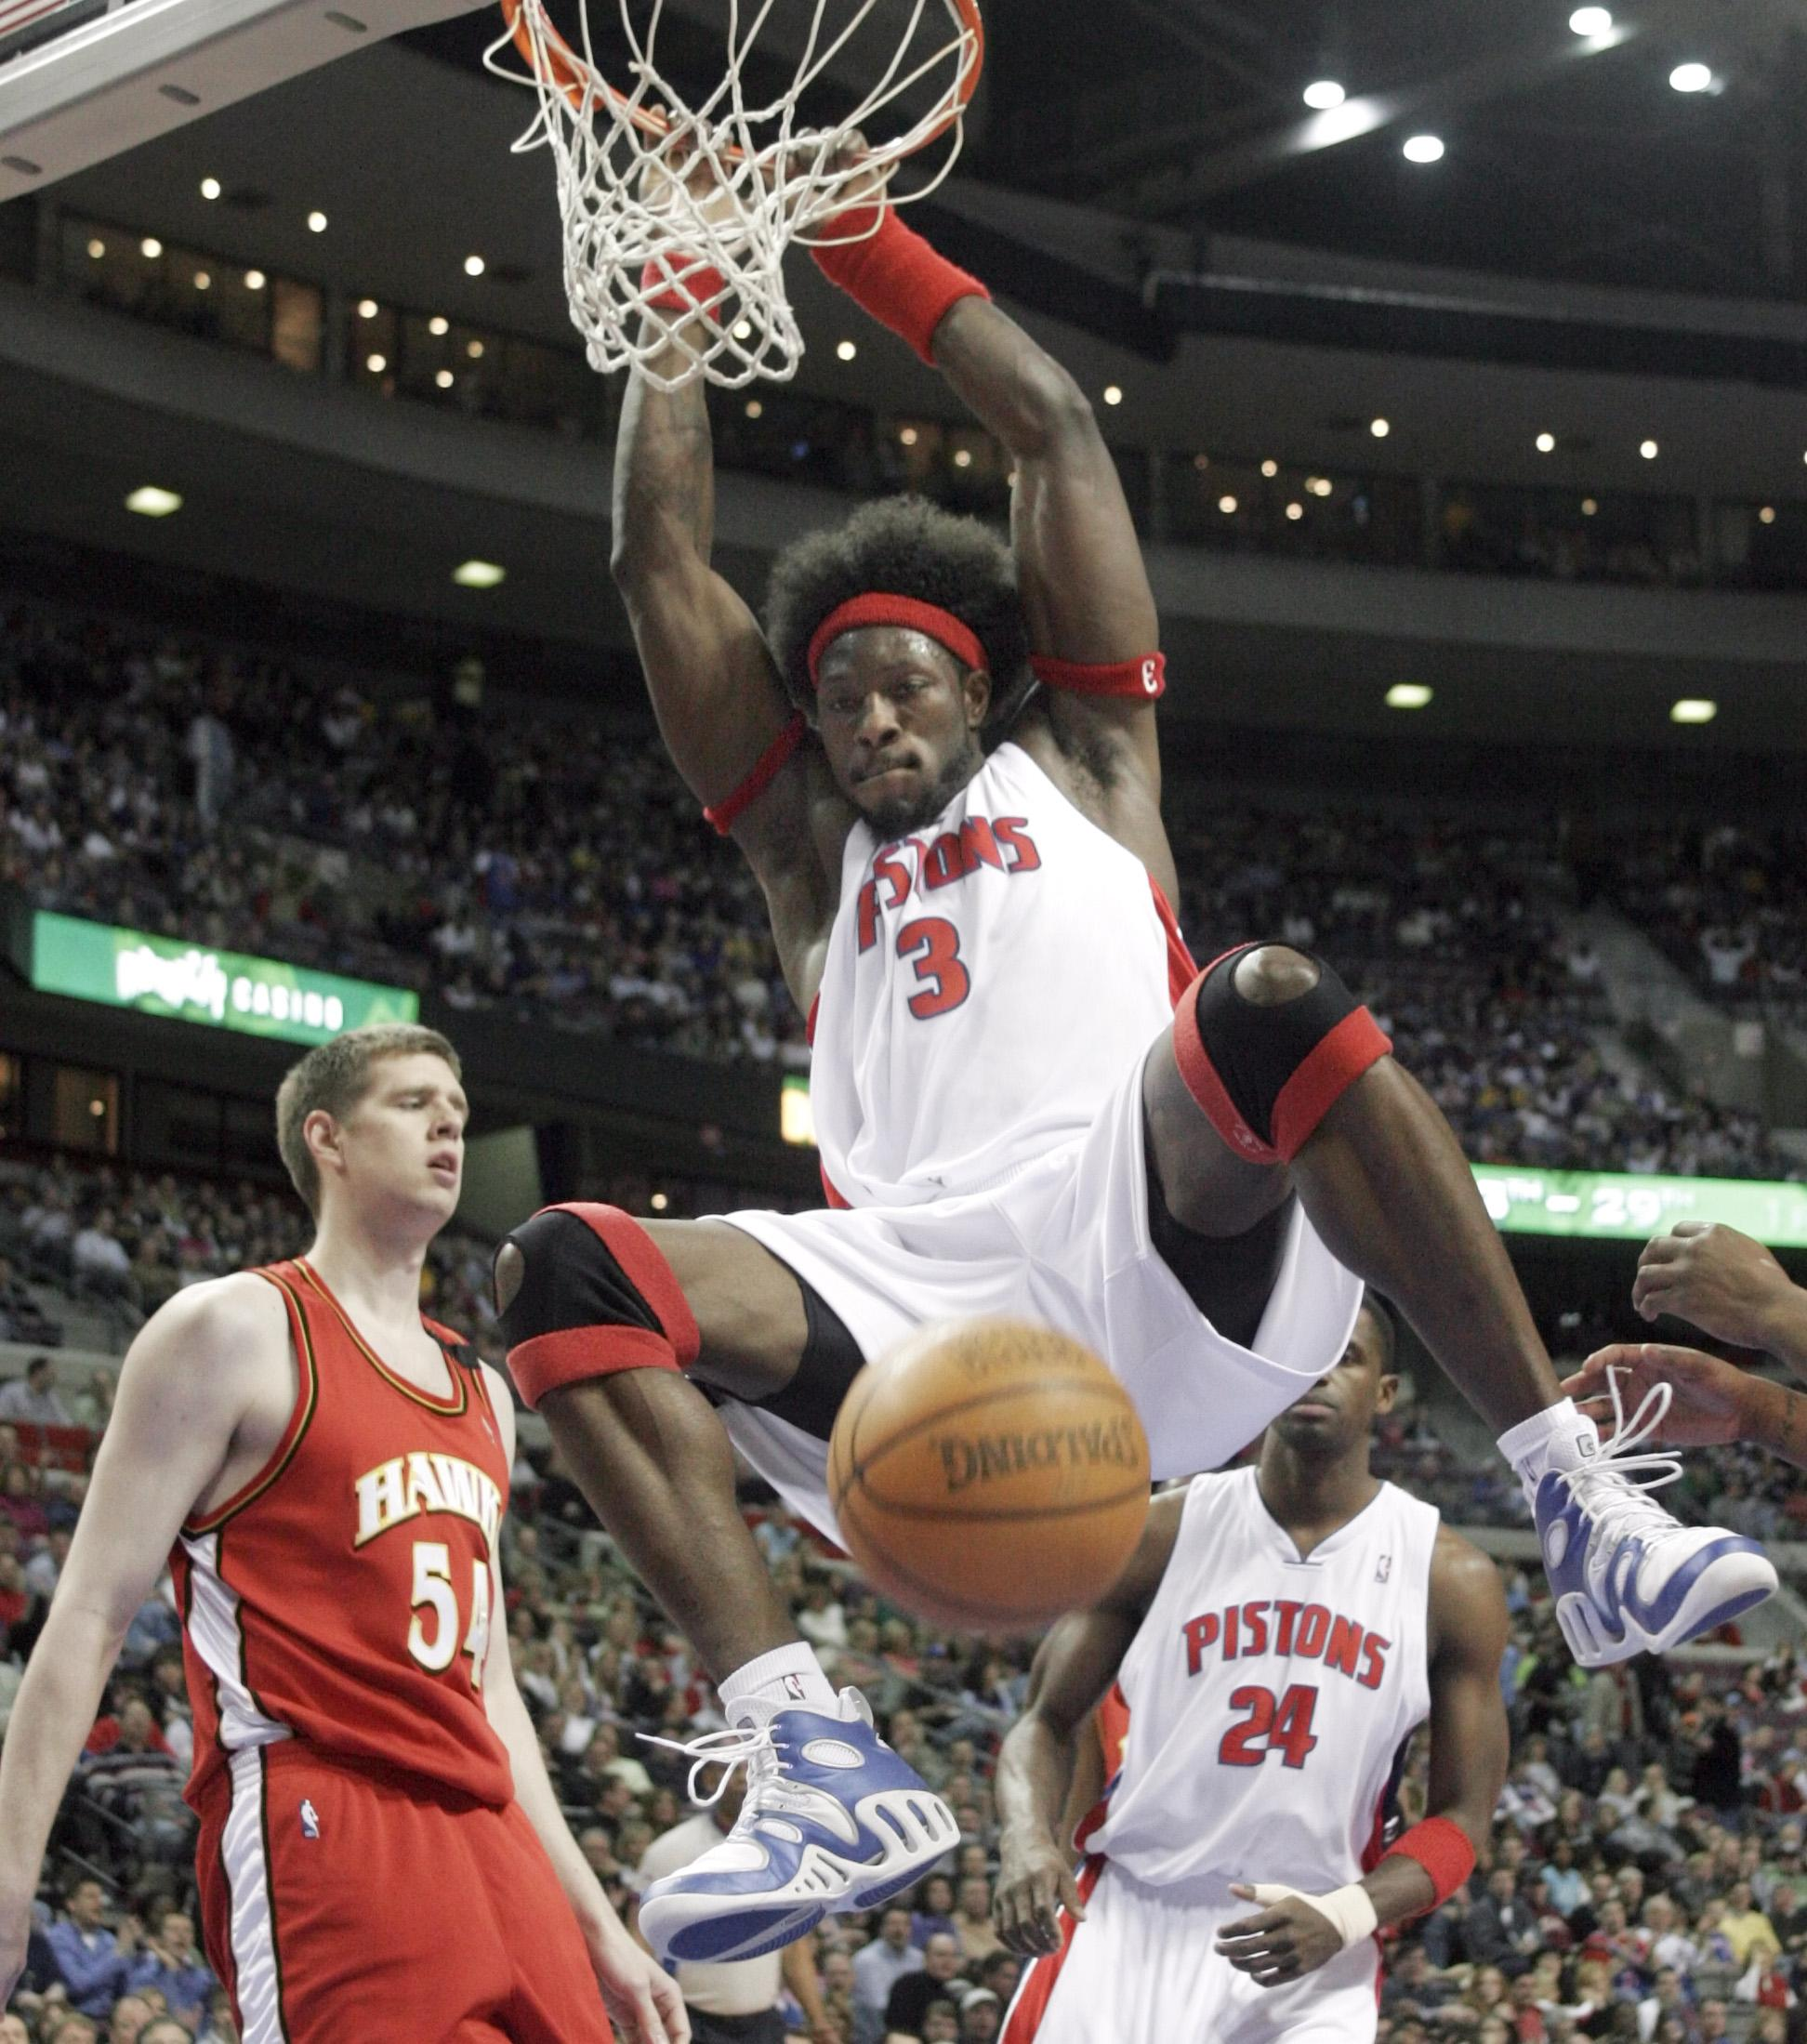 Ben Wallace looks forward to jersey retirement with Pistons